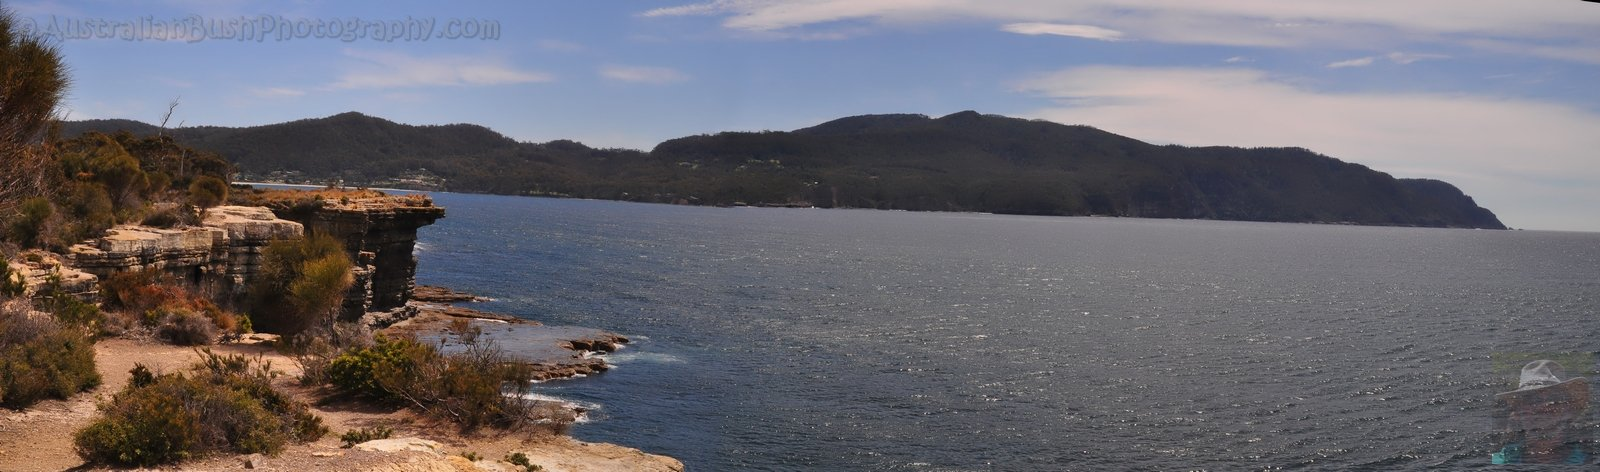 Pirates Bay from The Blowhole Lookout